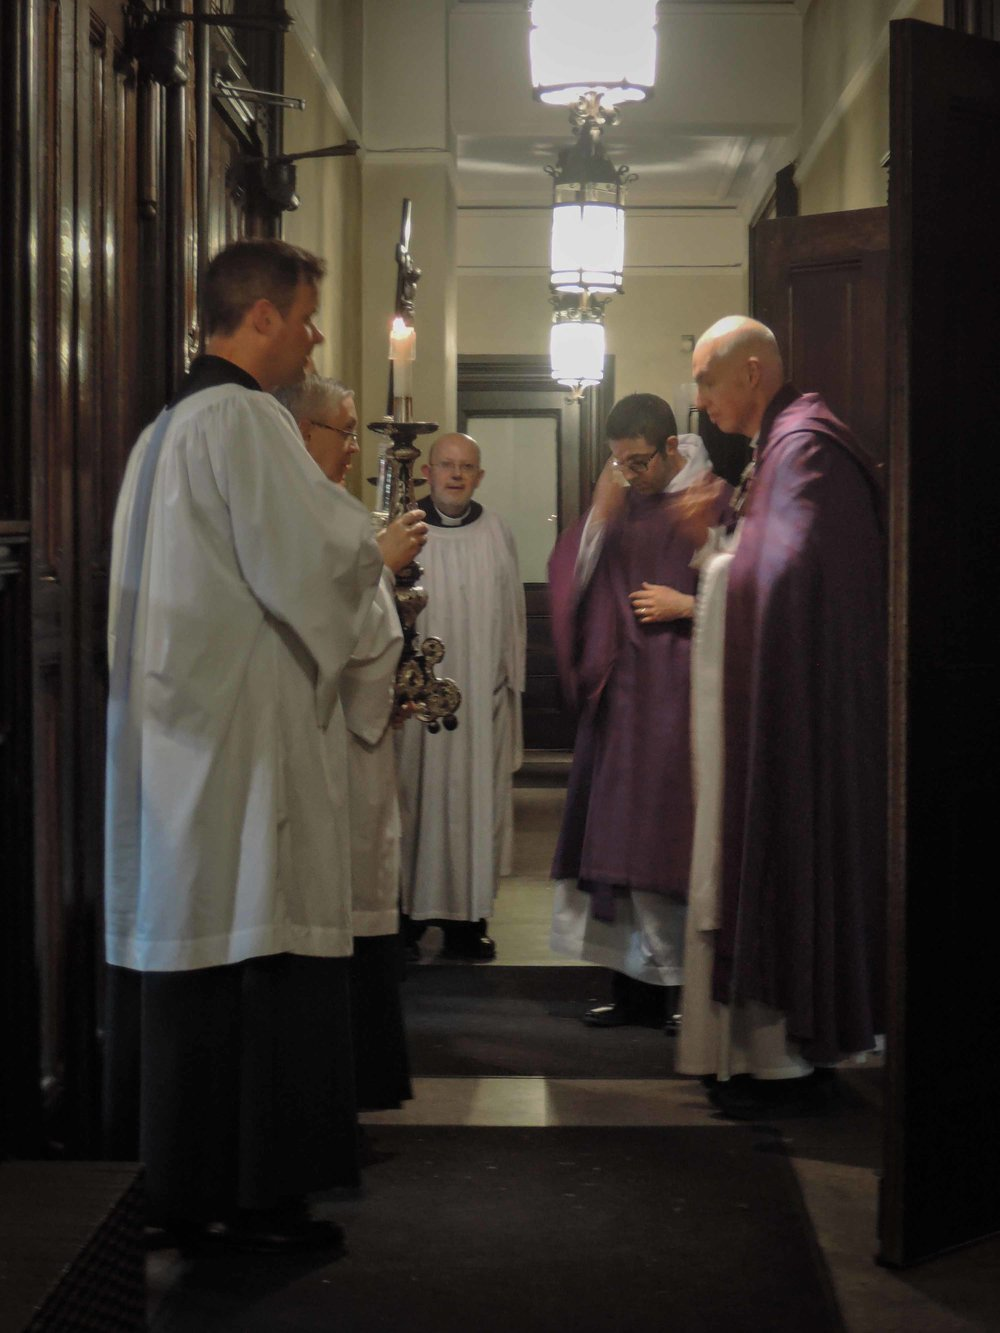 A final prayer in the narthex after Evensong & Benediction.